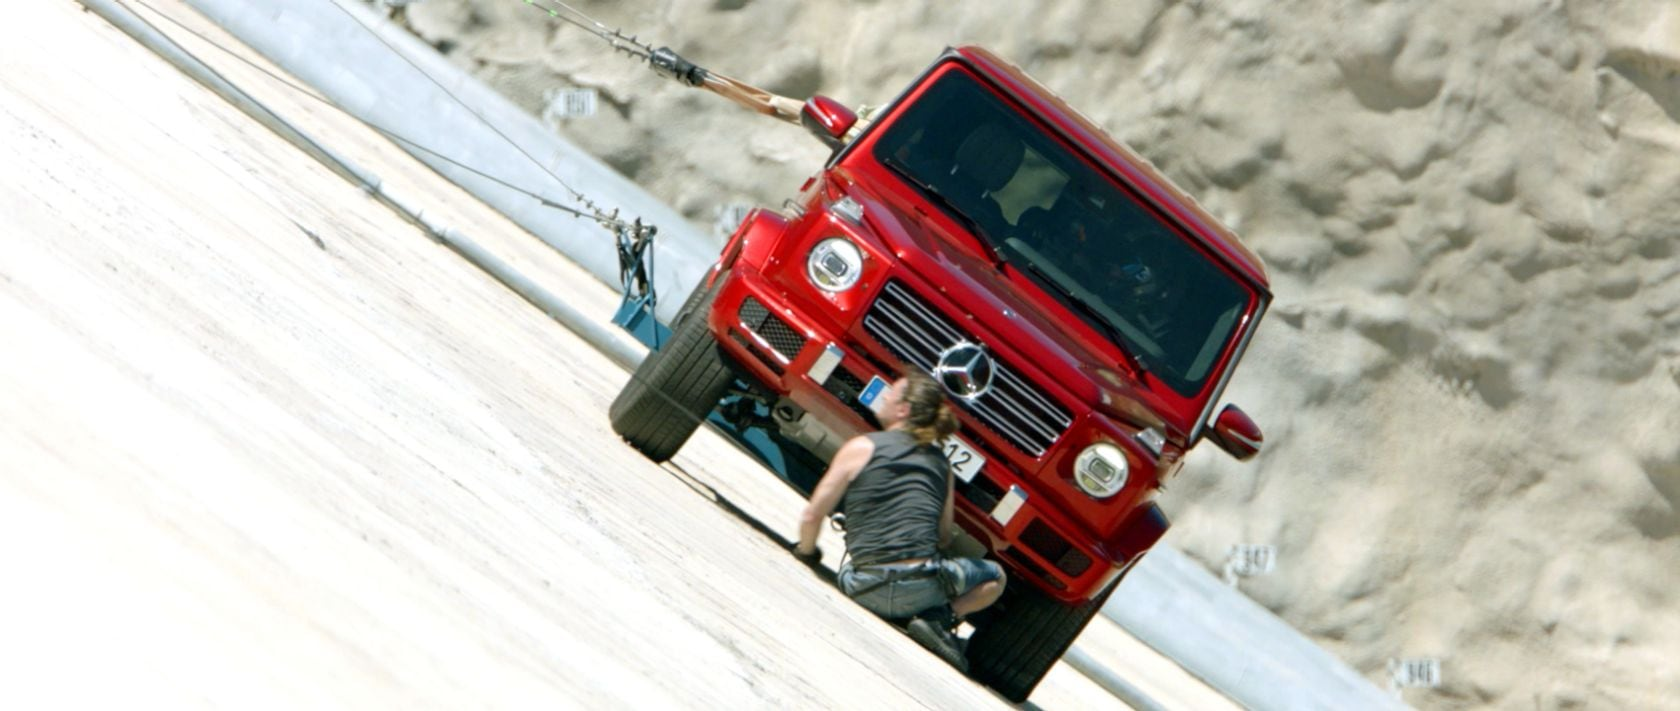 The Mercedes-Benz G 350 d (W 463) in designo hyacinth red metallic is secured at the Punta Negra dam.